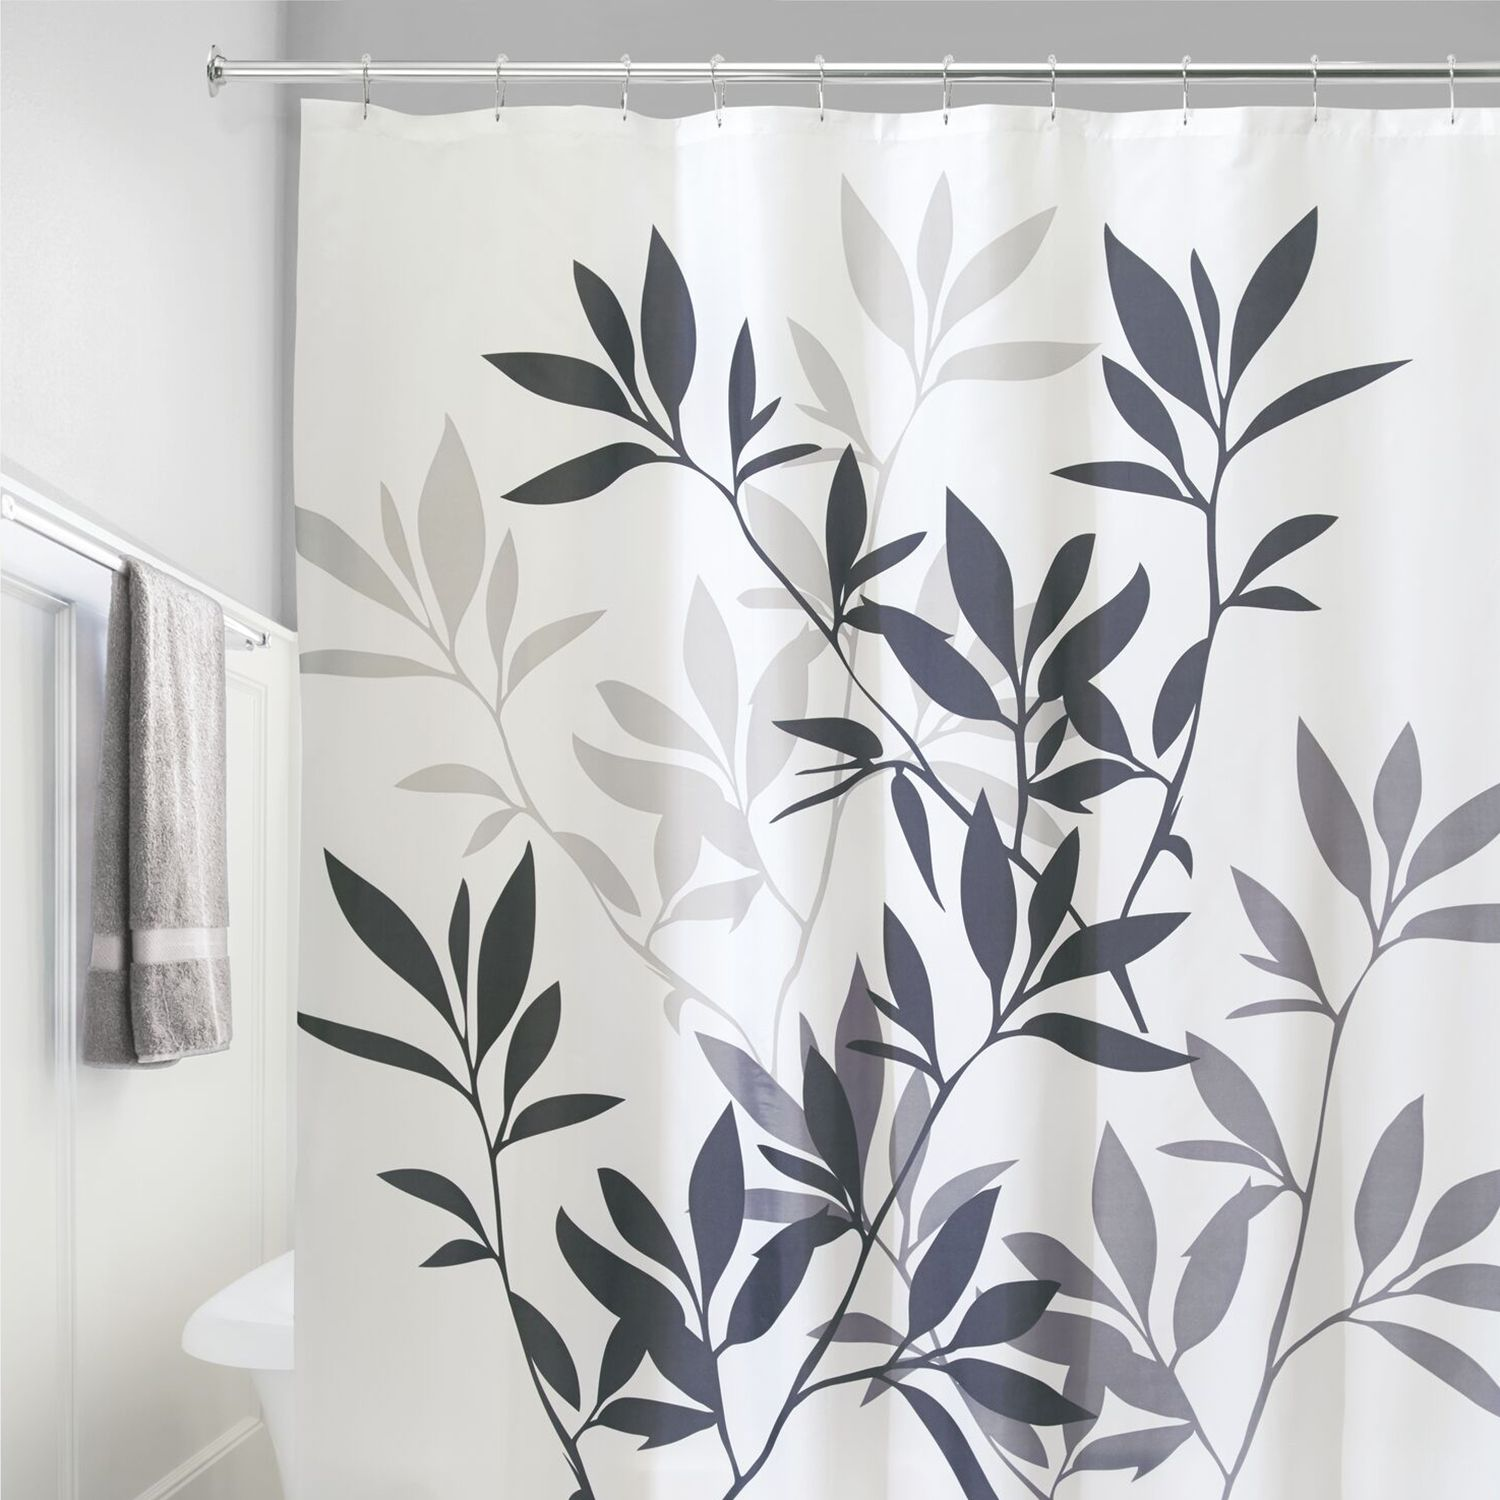 Leaves Fabric Shower Curtain. Brown Black Gray